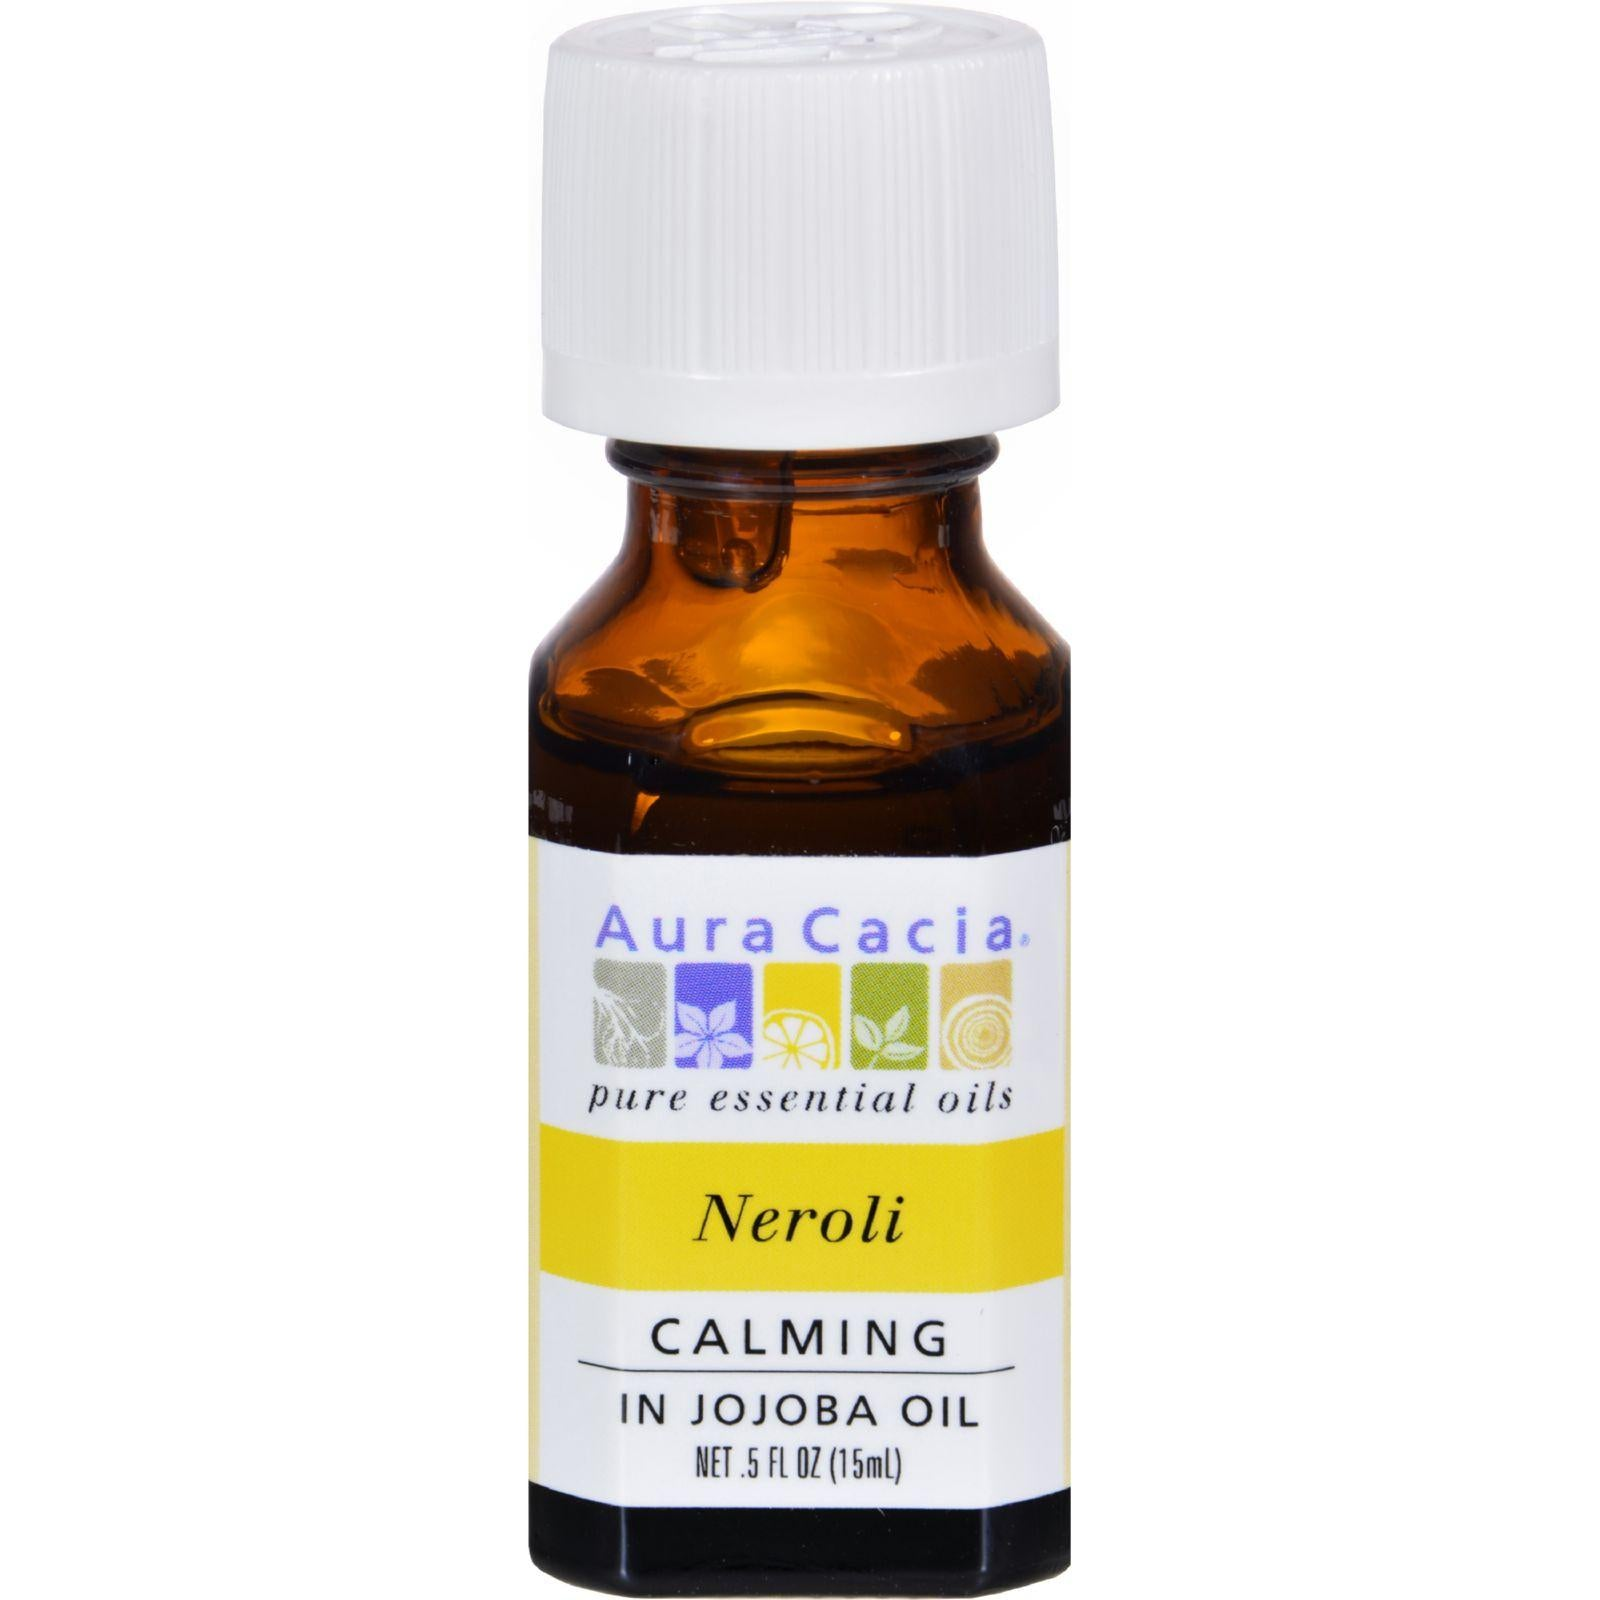 Aura Cacia Neroli In Jojoba Oil - 0.5 Fl Oz